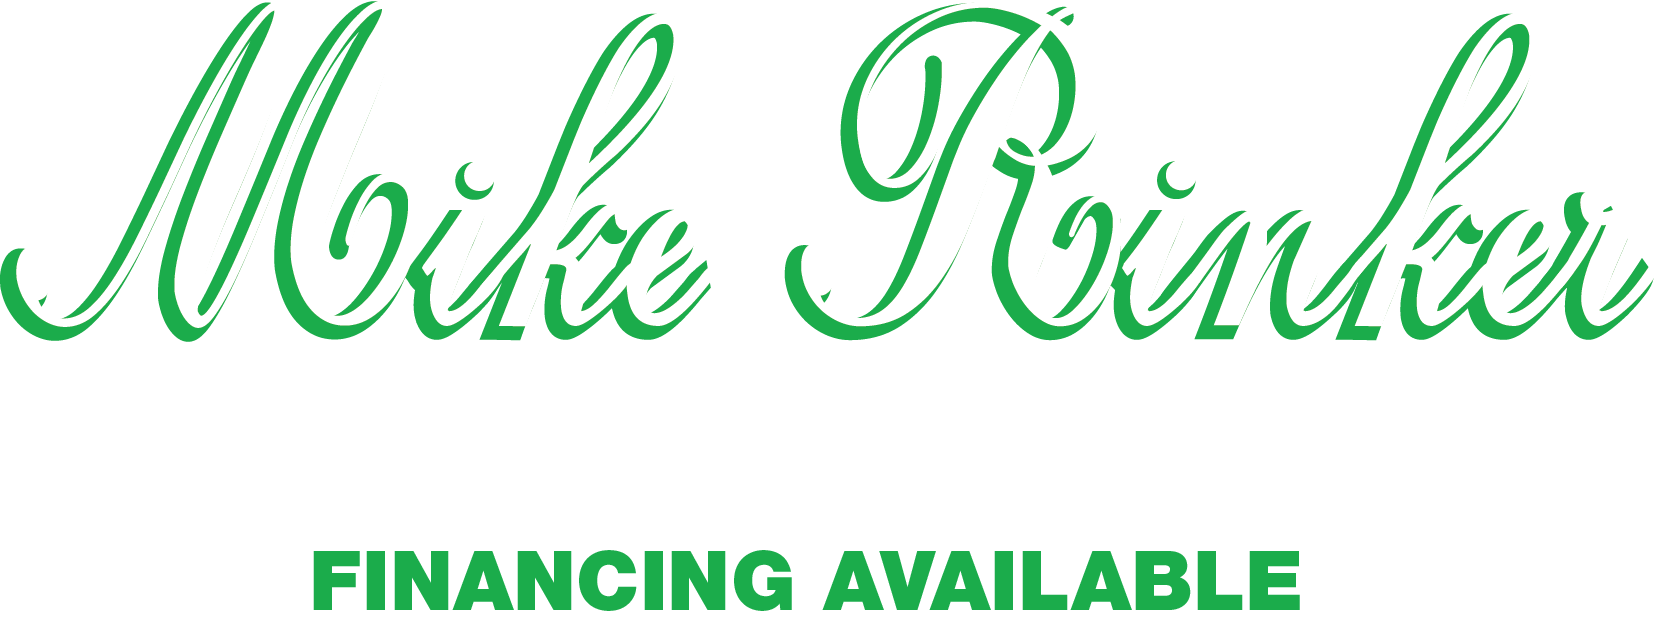 Mike Rinker Farm Equipment buying, selling & trading equipment